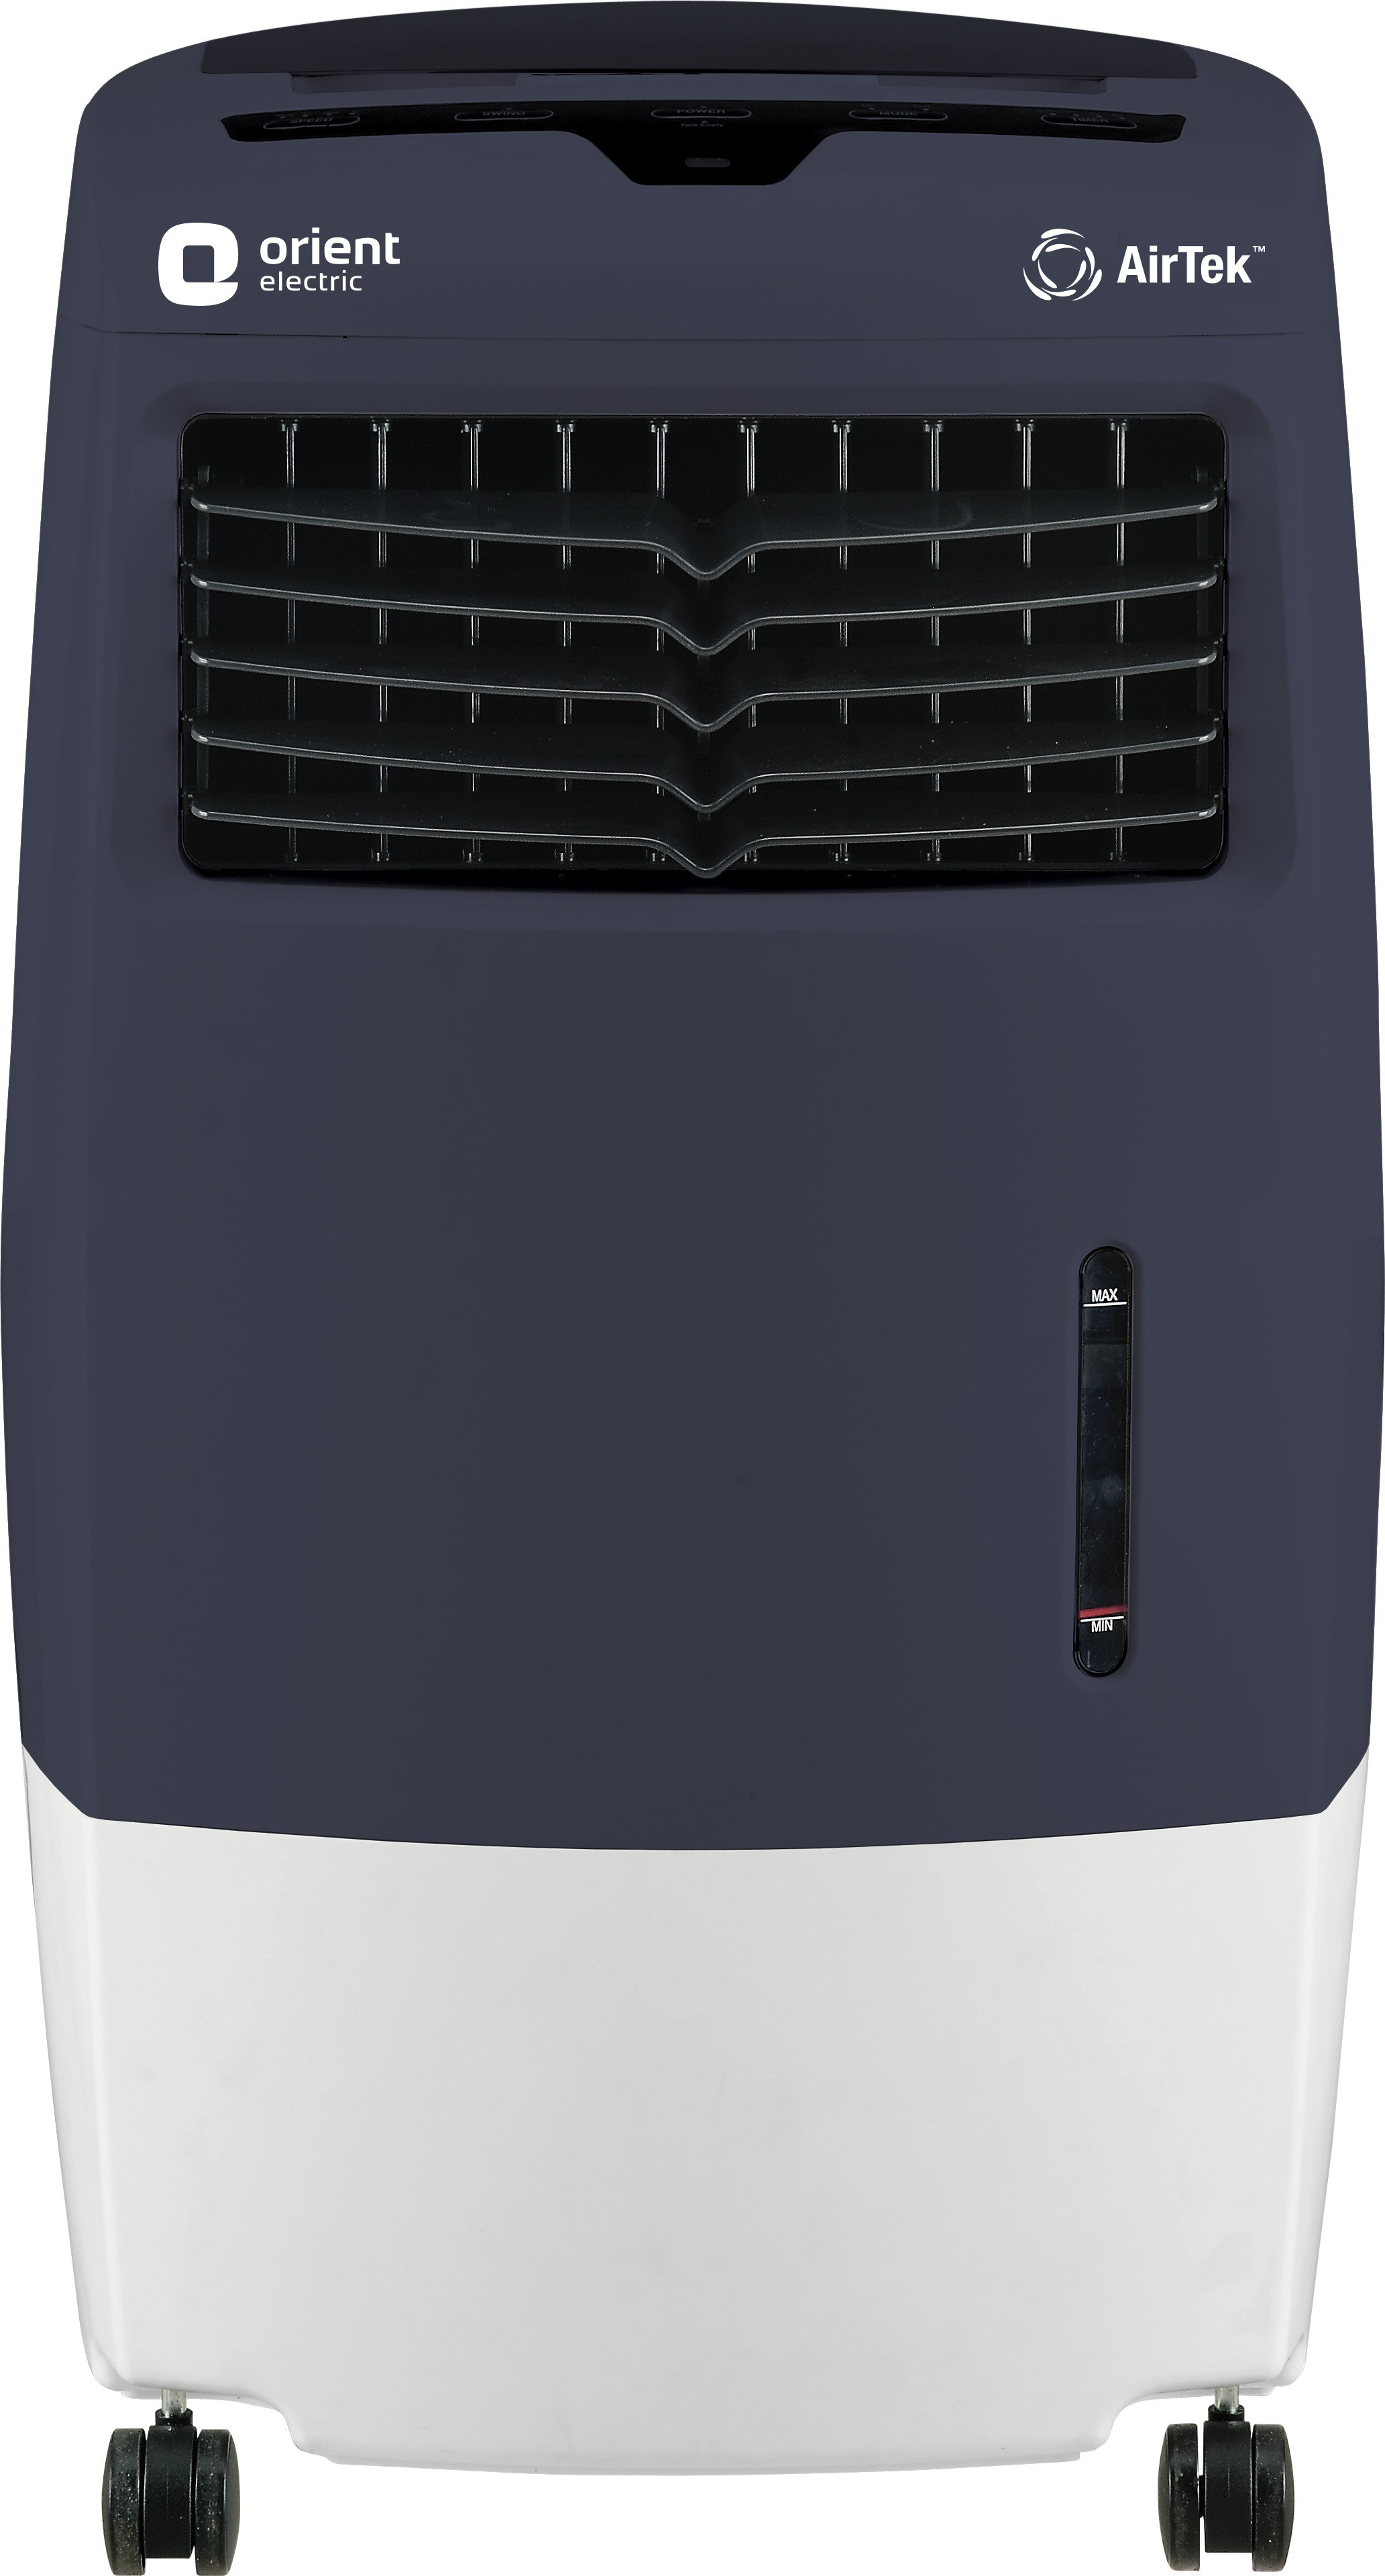 Orient Electric Airtek (AT25AE) Room Air Cooler(White, Grey, 25 Litres)